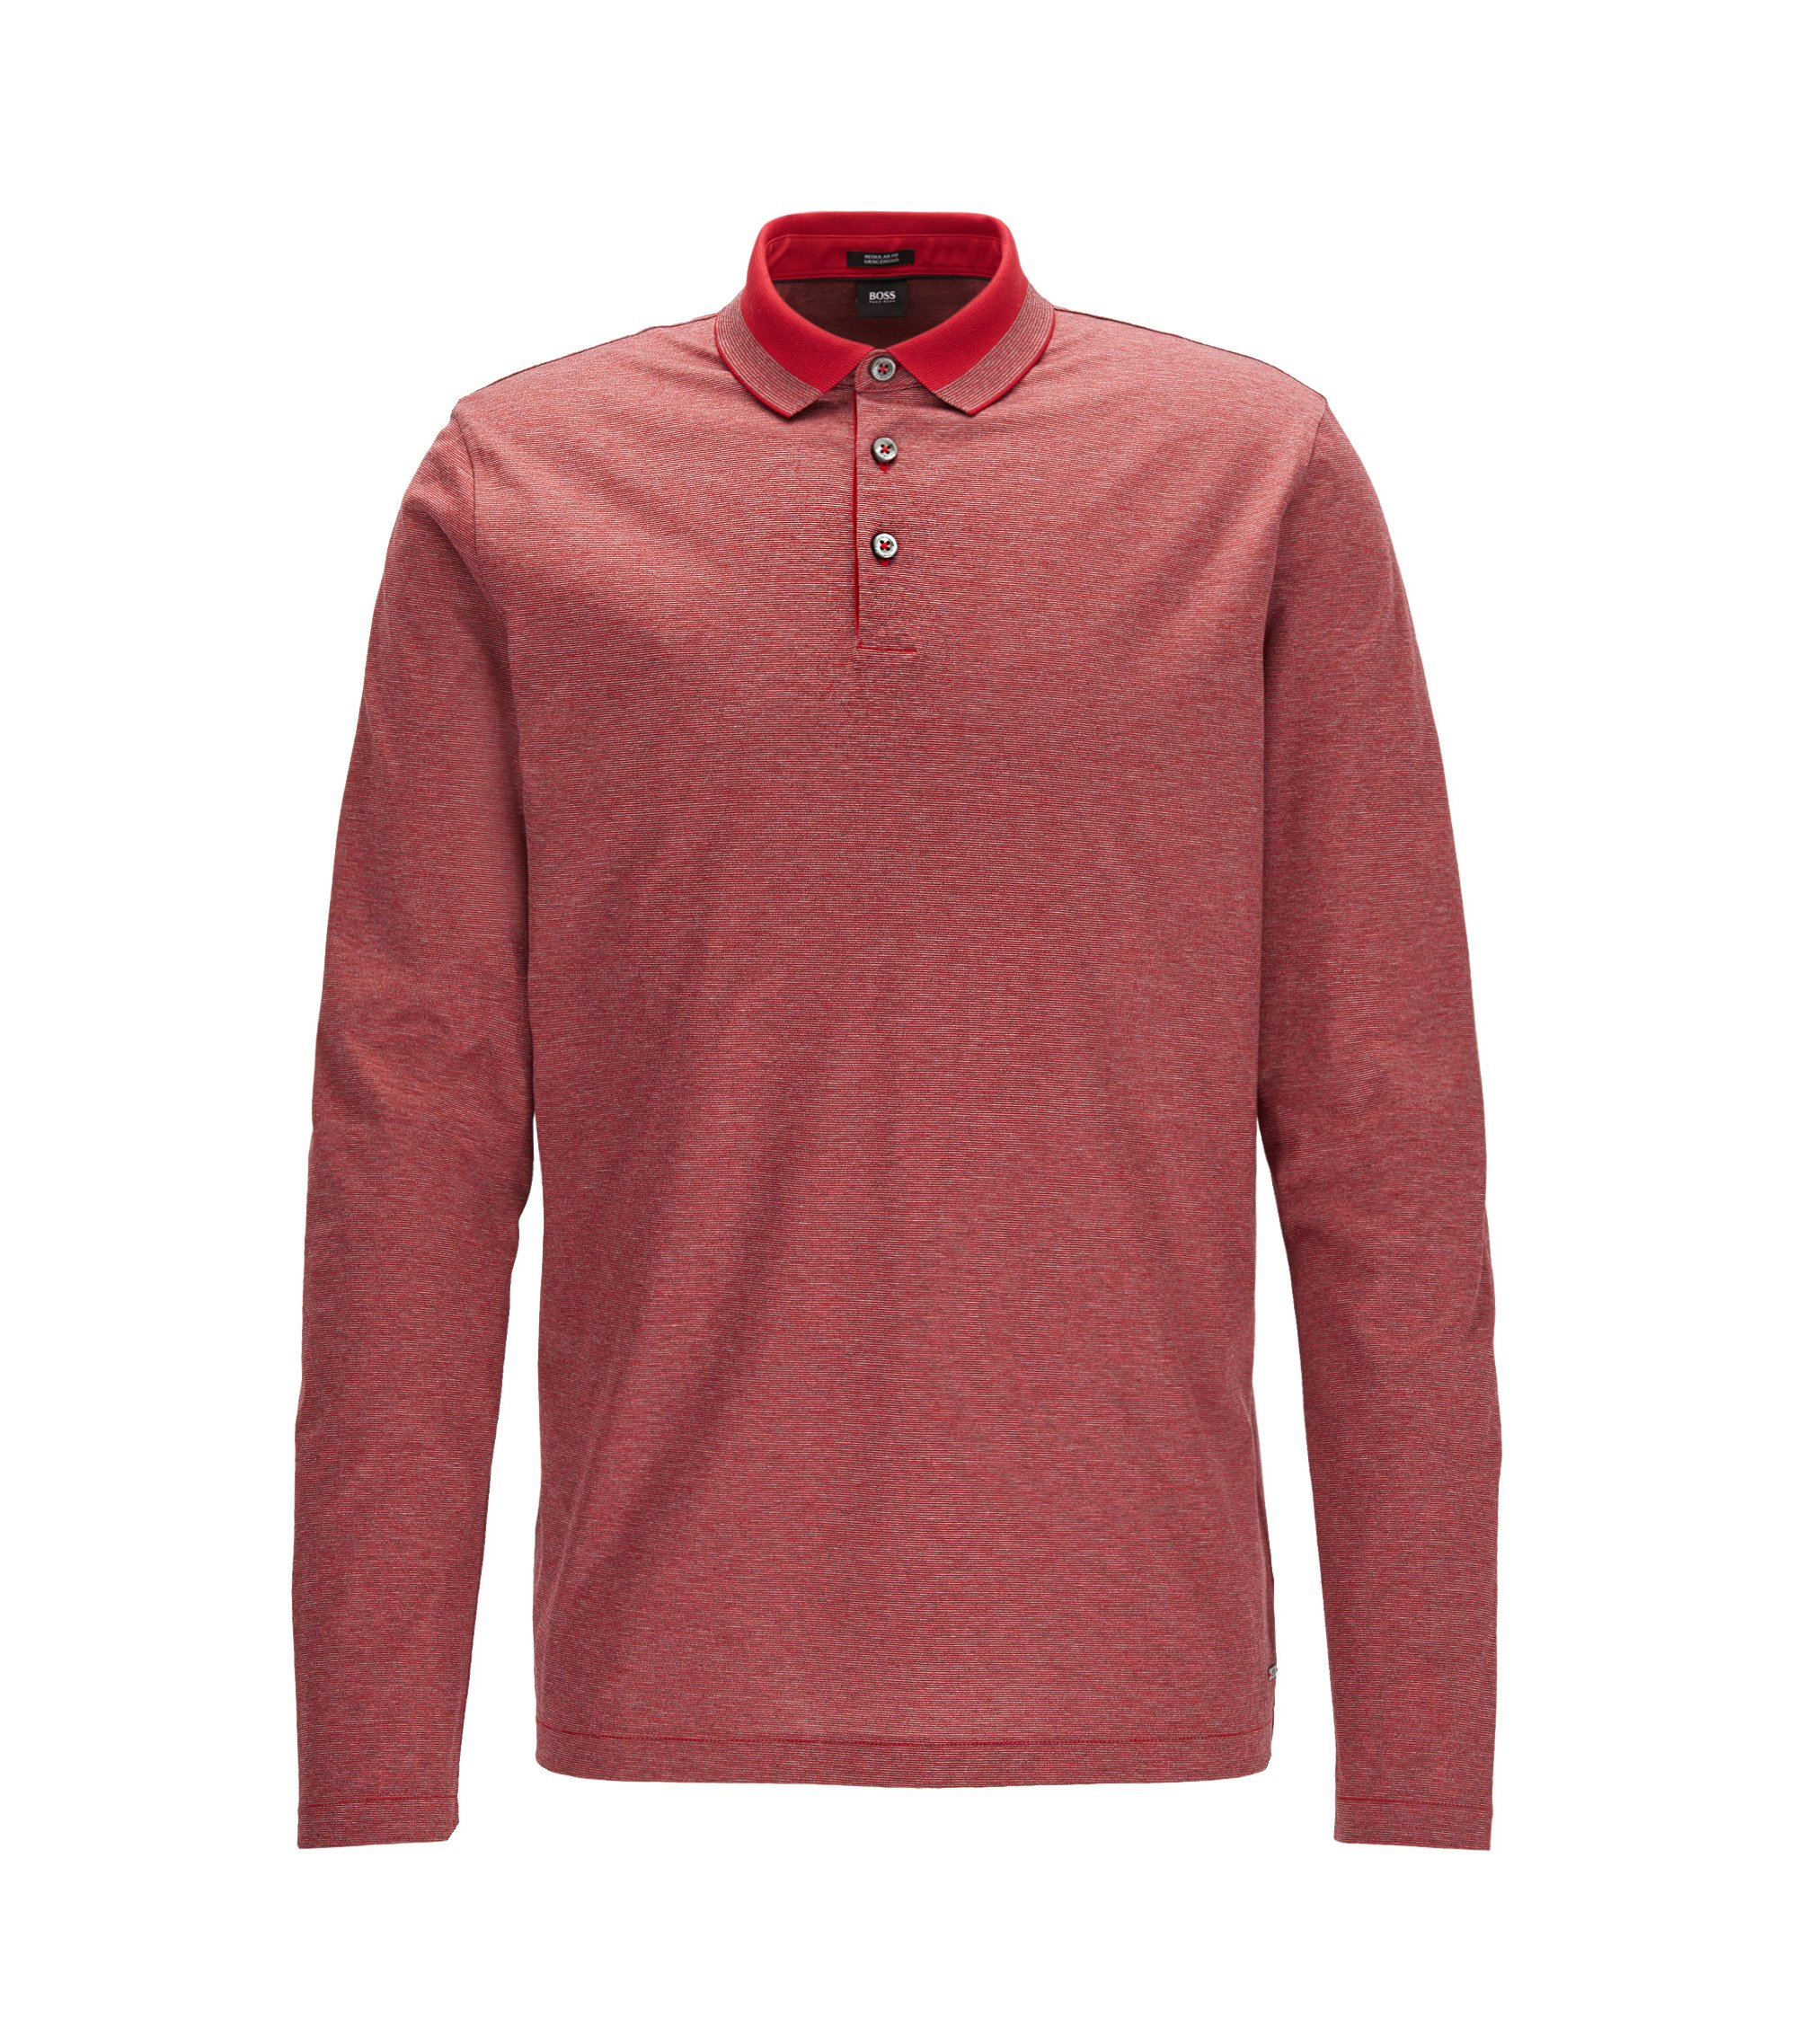 Mercerized Cotton Polo Shirt, Regular Fit | Pado, Red